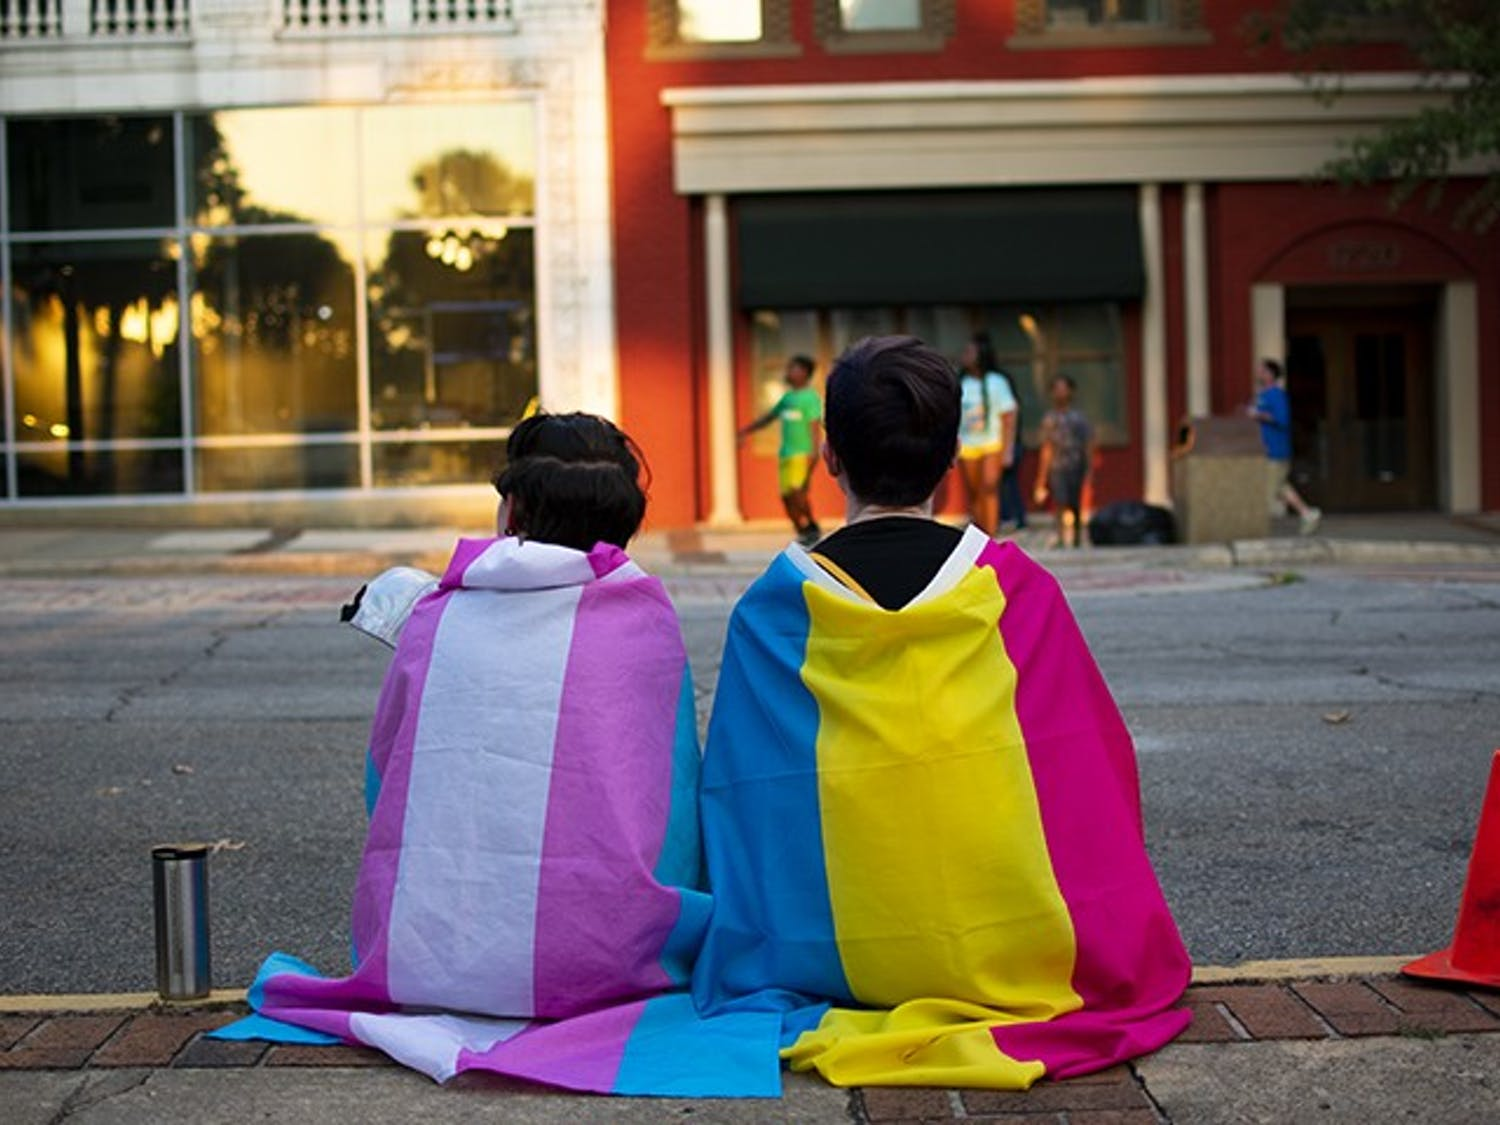 Two people, one wearing the transgender flag (left) and the other a pansexual flag (right), wait for the South Carolina pride parade to start this weekend.